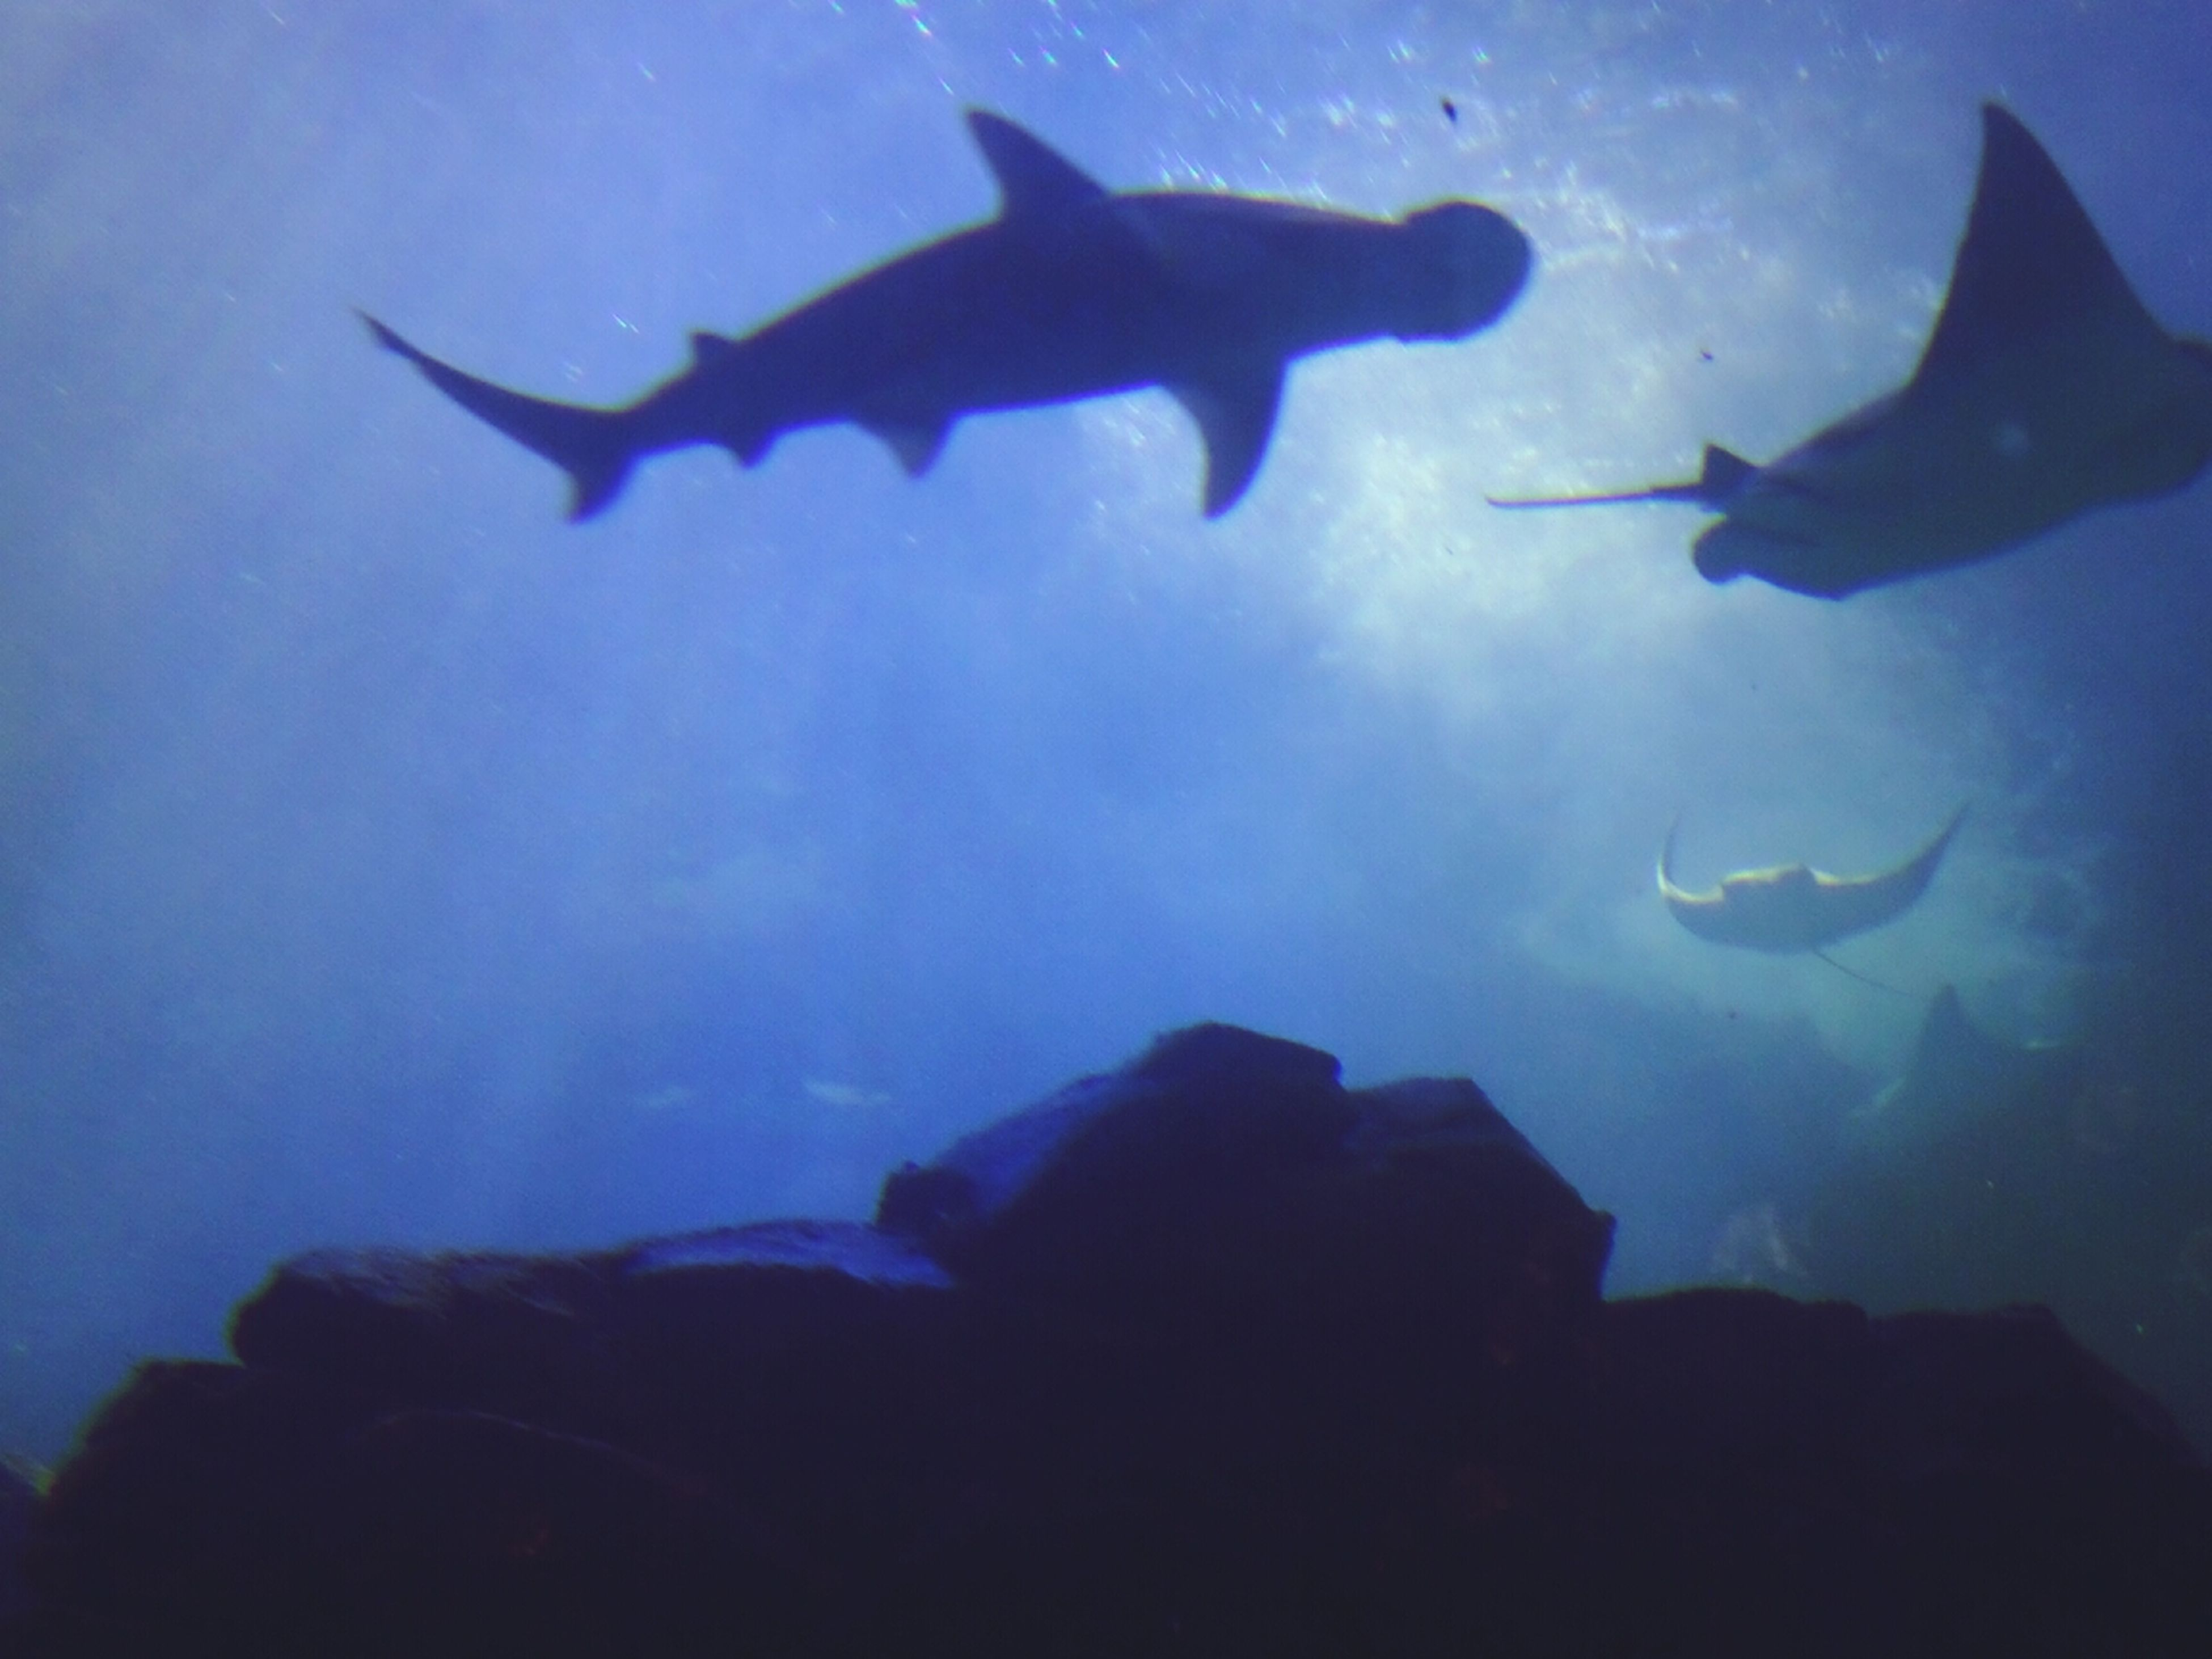 underwater, animal themes, blue, silhouette, swimming, flying, fish, wildlife, animals in the wild, sea life, undersea, low angle view, one animal, sea, unrecognizable person, aquarium, mid-air, nature, leisure activity